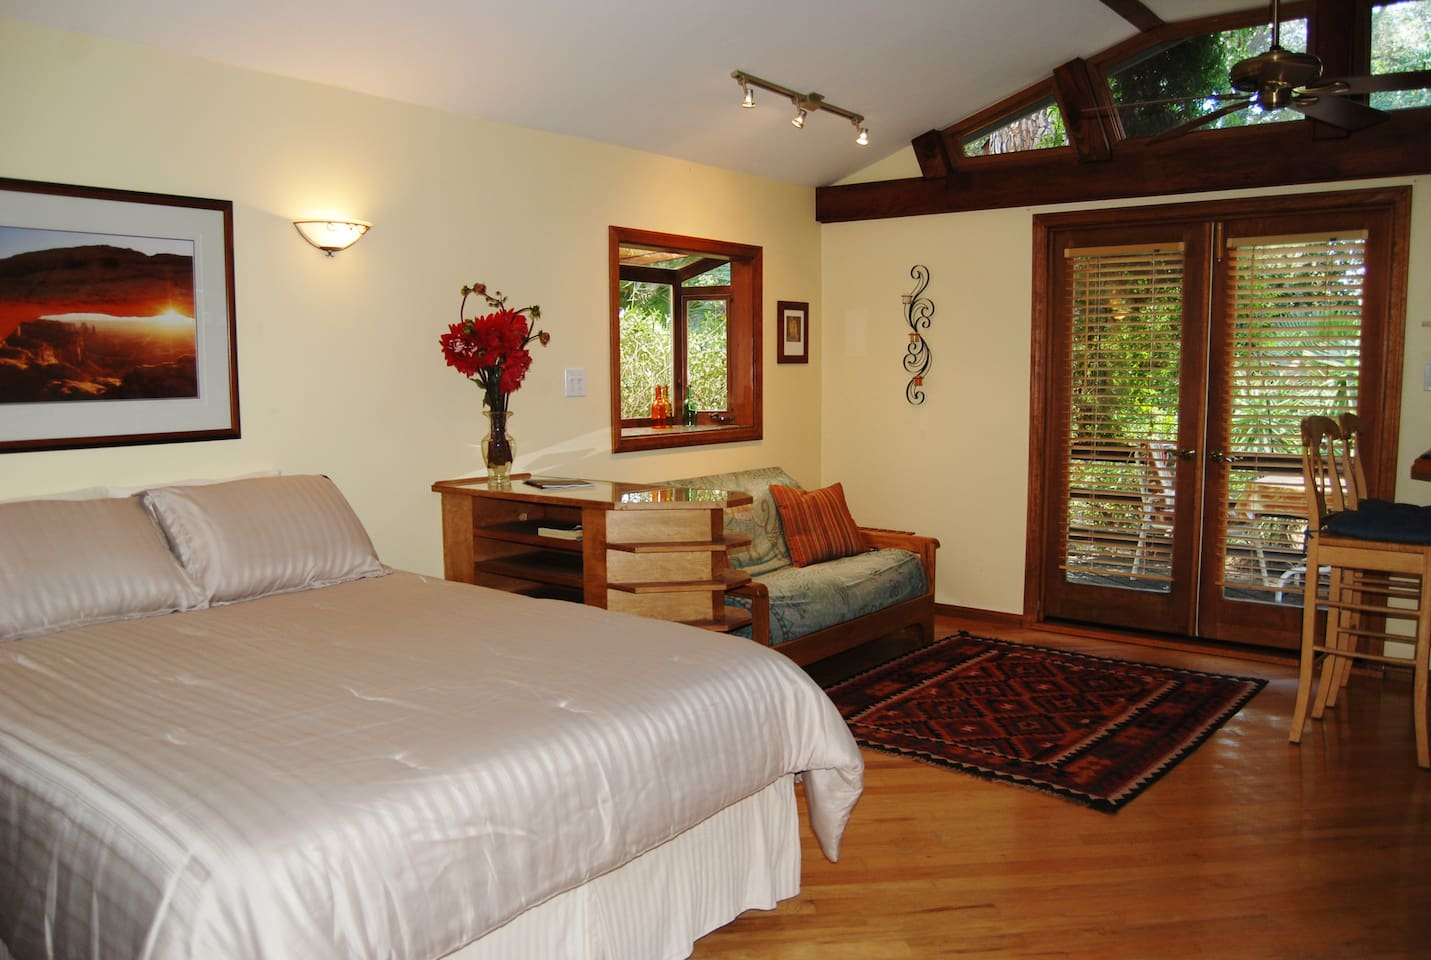 The guest cottage features a comfy queen size bed and a futon couch. Hardwood floors with local artisan tile accents.